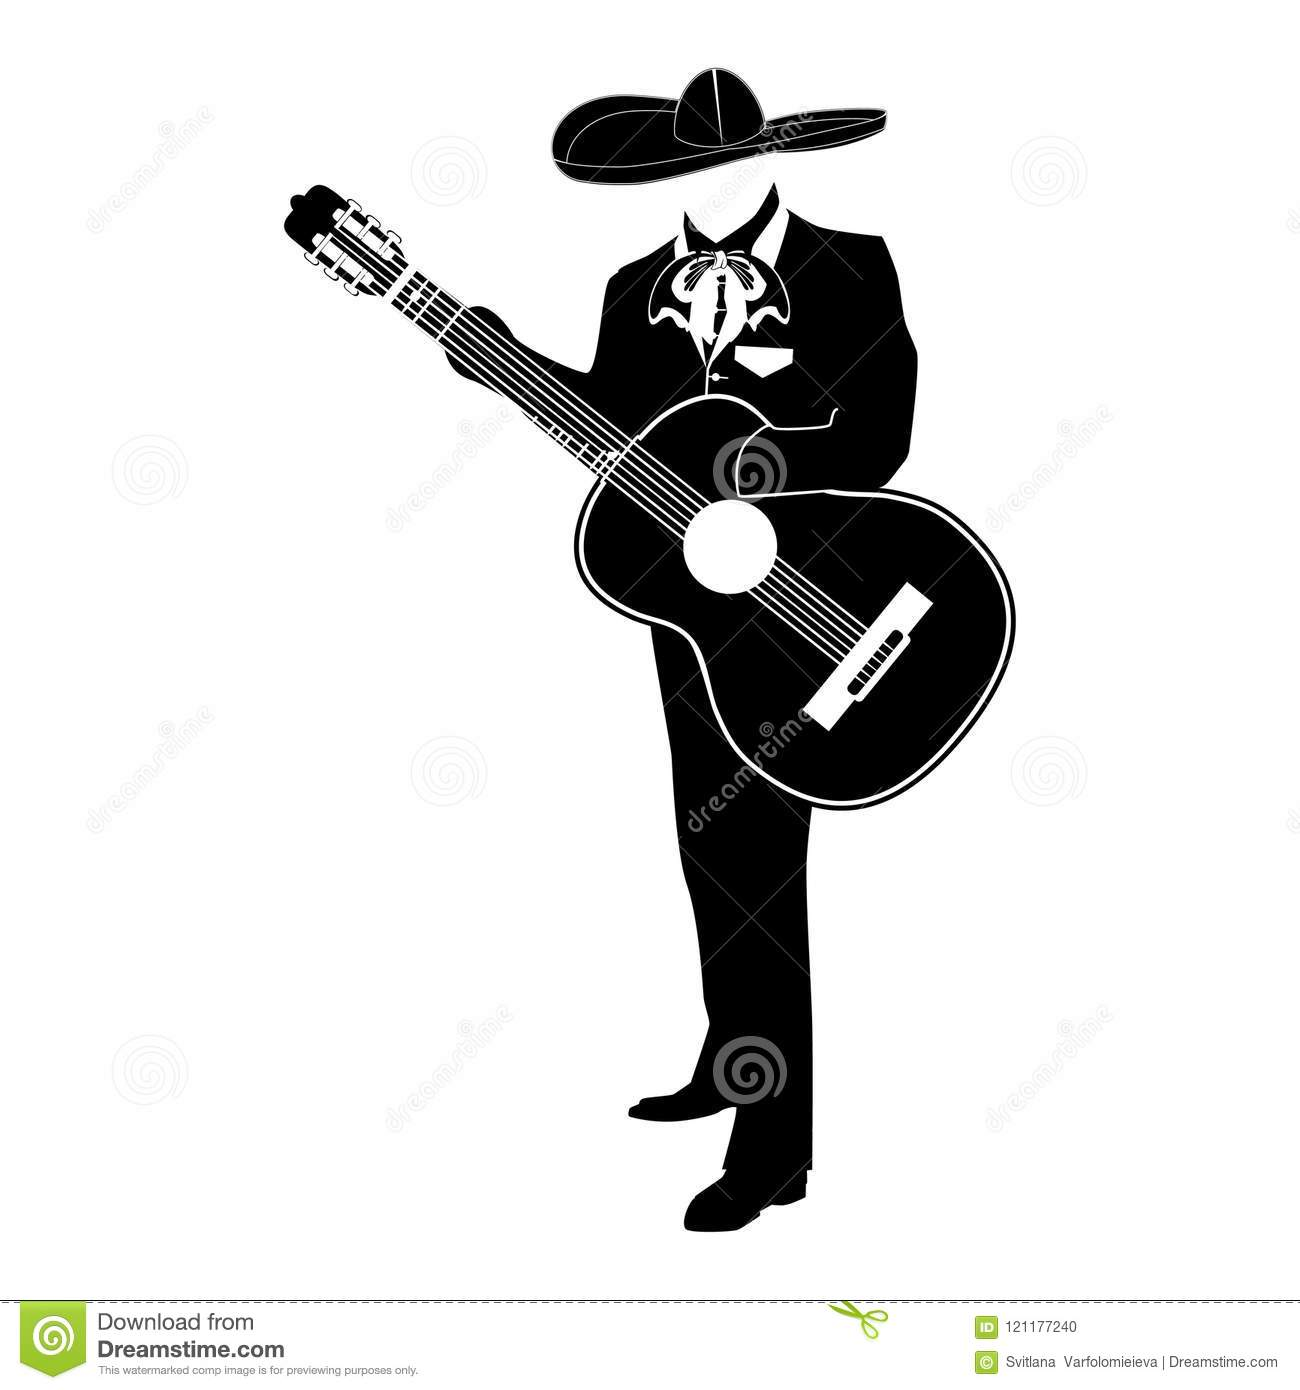 Mariachi musician with guitar in mariachi traditional costume and sombrero.  Vector black template on white background. 6082b05a0e6